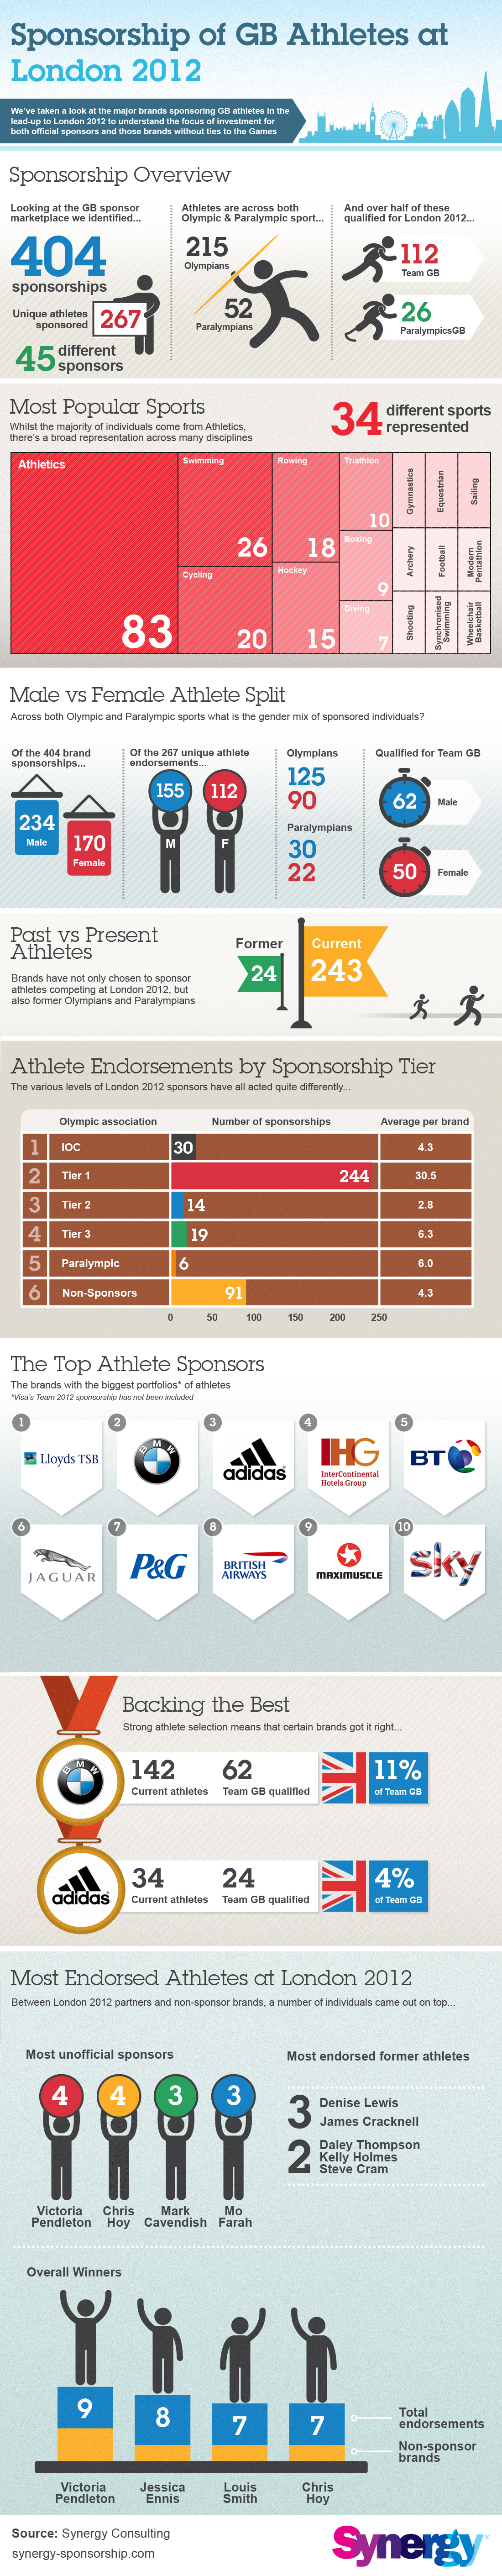 SponsorshipofGBAthletesatLondon2012 Brands Sponsor Athletes from Great Britain at 2012 Olympics [Infographic]